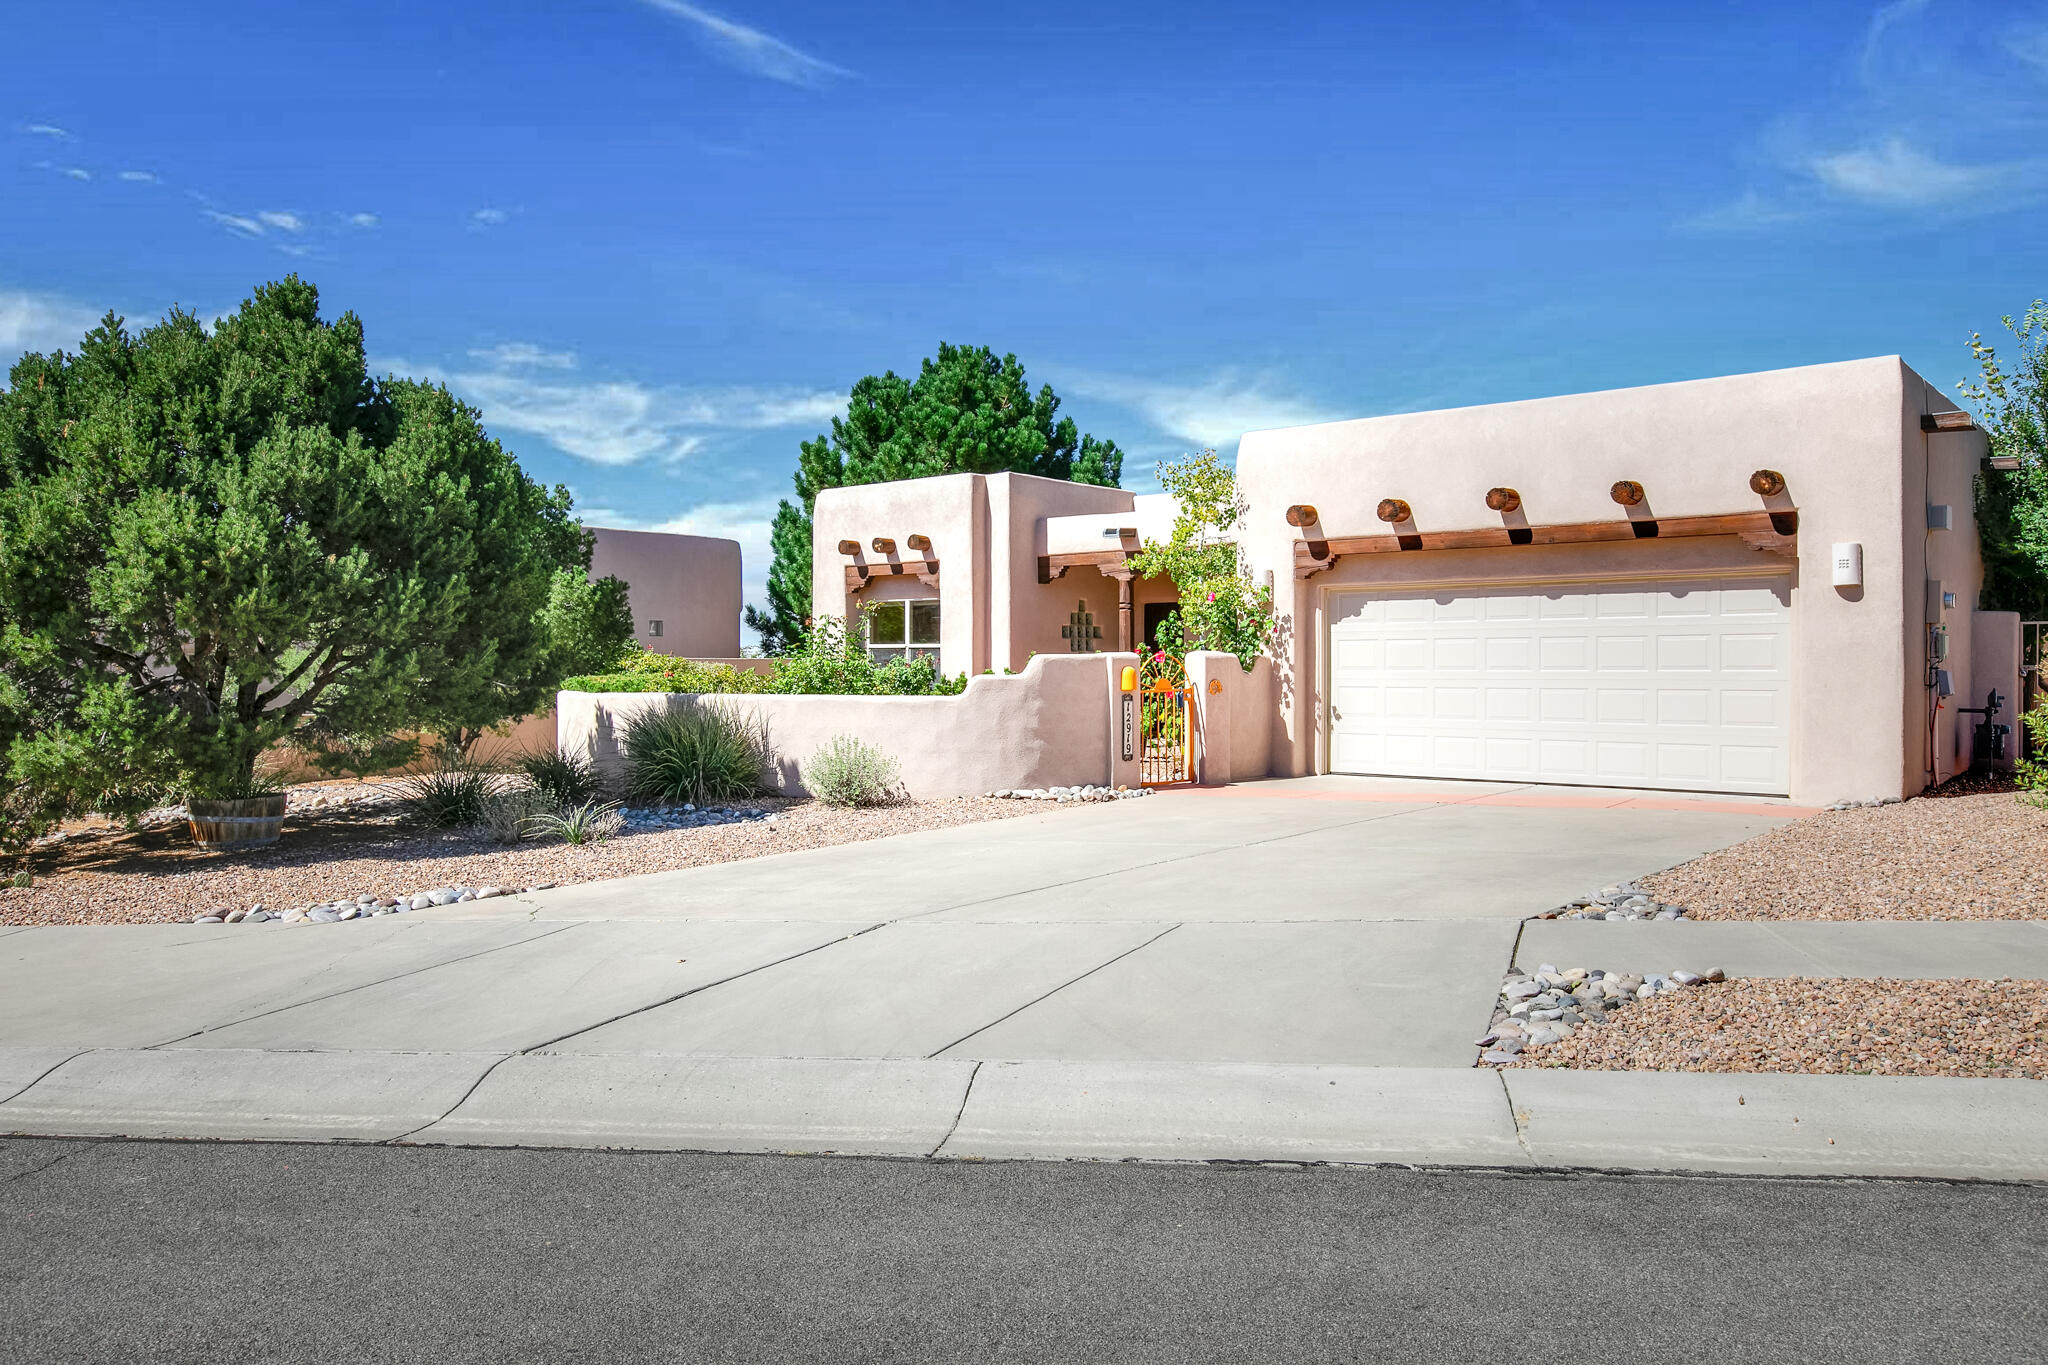 Single Level in High Desert w/ 180 degrees Unobstructed Mountain Views! A blend of southwestern & modern architecture styles, T&G ceilings, wood beams, kiva fireplace, curved walls, an abundance of windows & natural light flowing in from sunrise through sunsets! Open kitchen concept w/ island, breakfast bar, generous cabinet & countertop space + stainless appliances. The master suite has private access to the backyard, 8 ft. windows, 3-way fireplace, jacuzzi tub, walk-in shower w/ 2 shower heads & walk-in closet! The north-facing backyard has an expansive covered patio w/ plenty of space to enjoy the built-in natural gas BBQ & granite top. Spectacular views & no back neighbors for over half a mile! Convenient access to trails, grocery shopping & parks. Schedule your private showing today!